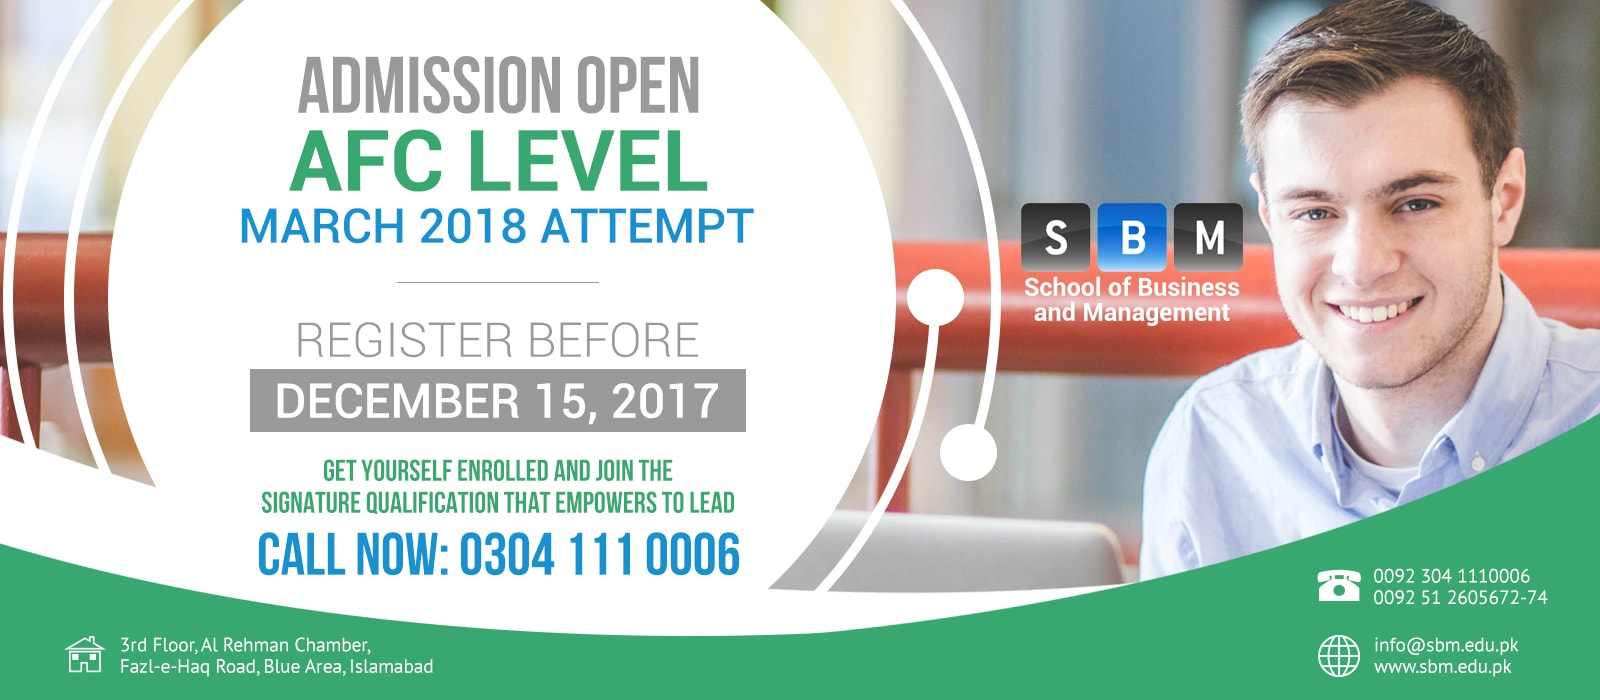 Admissions are open in AFC Level of CA for March 2018 attempt